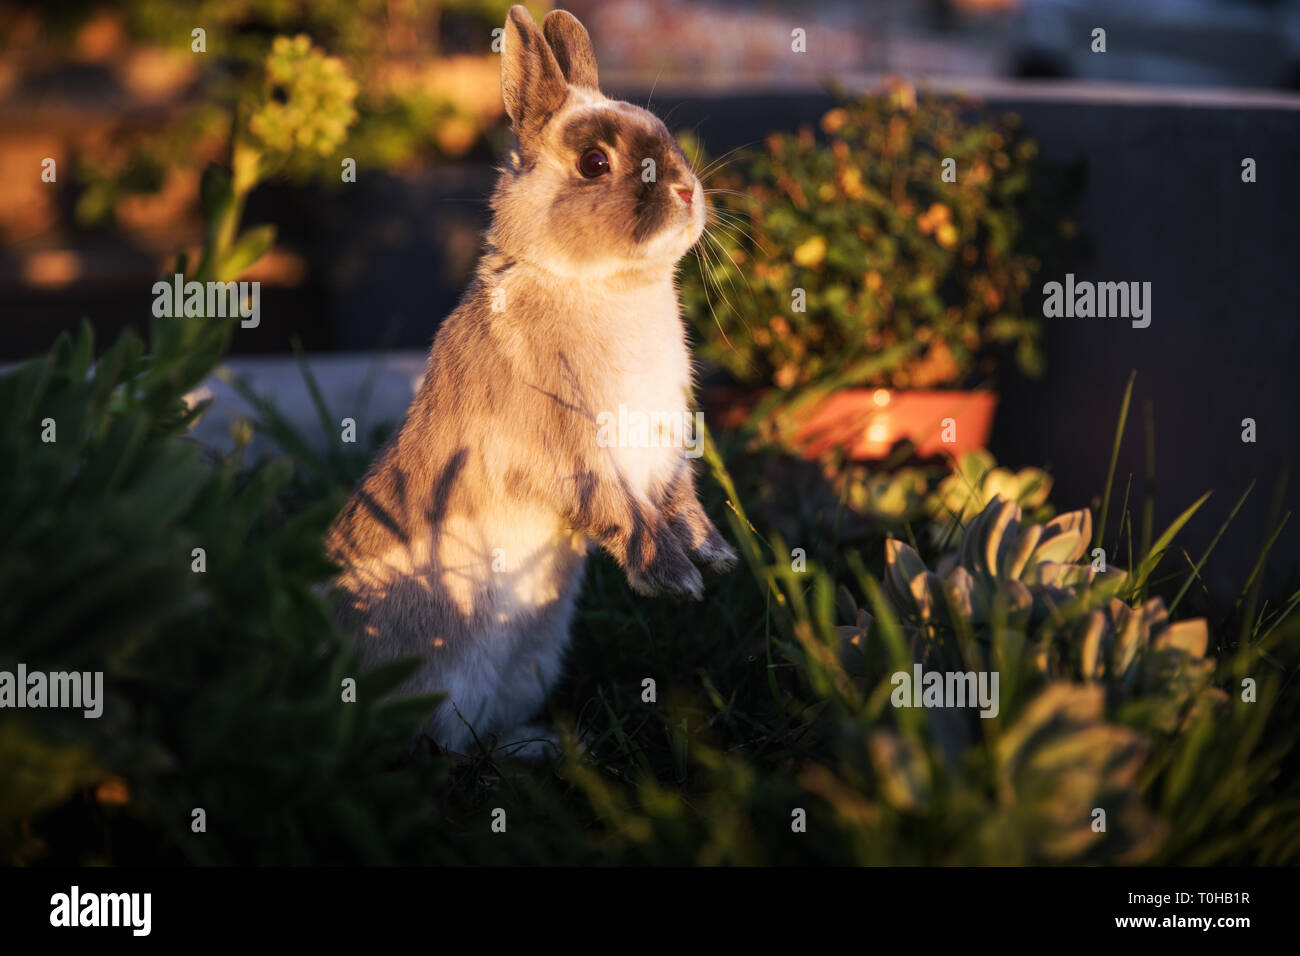 A brown and gray dwarf bunny standing on his hind legs in a garden, looking statuesque and turning toward camera. Stock Photo